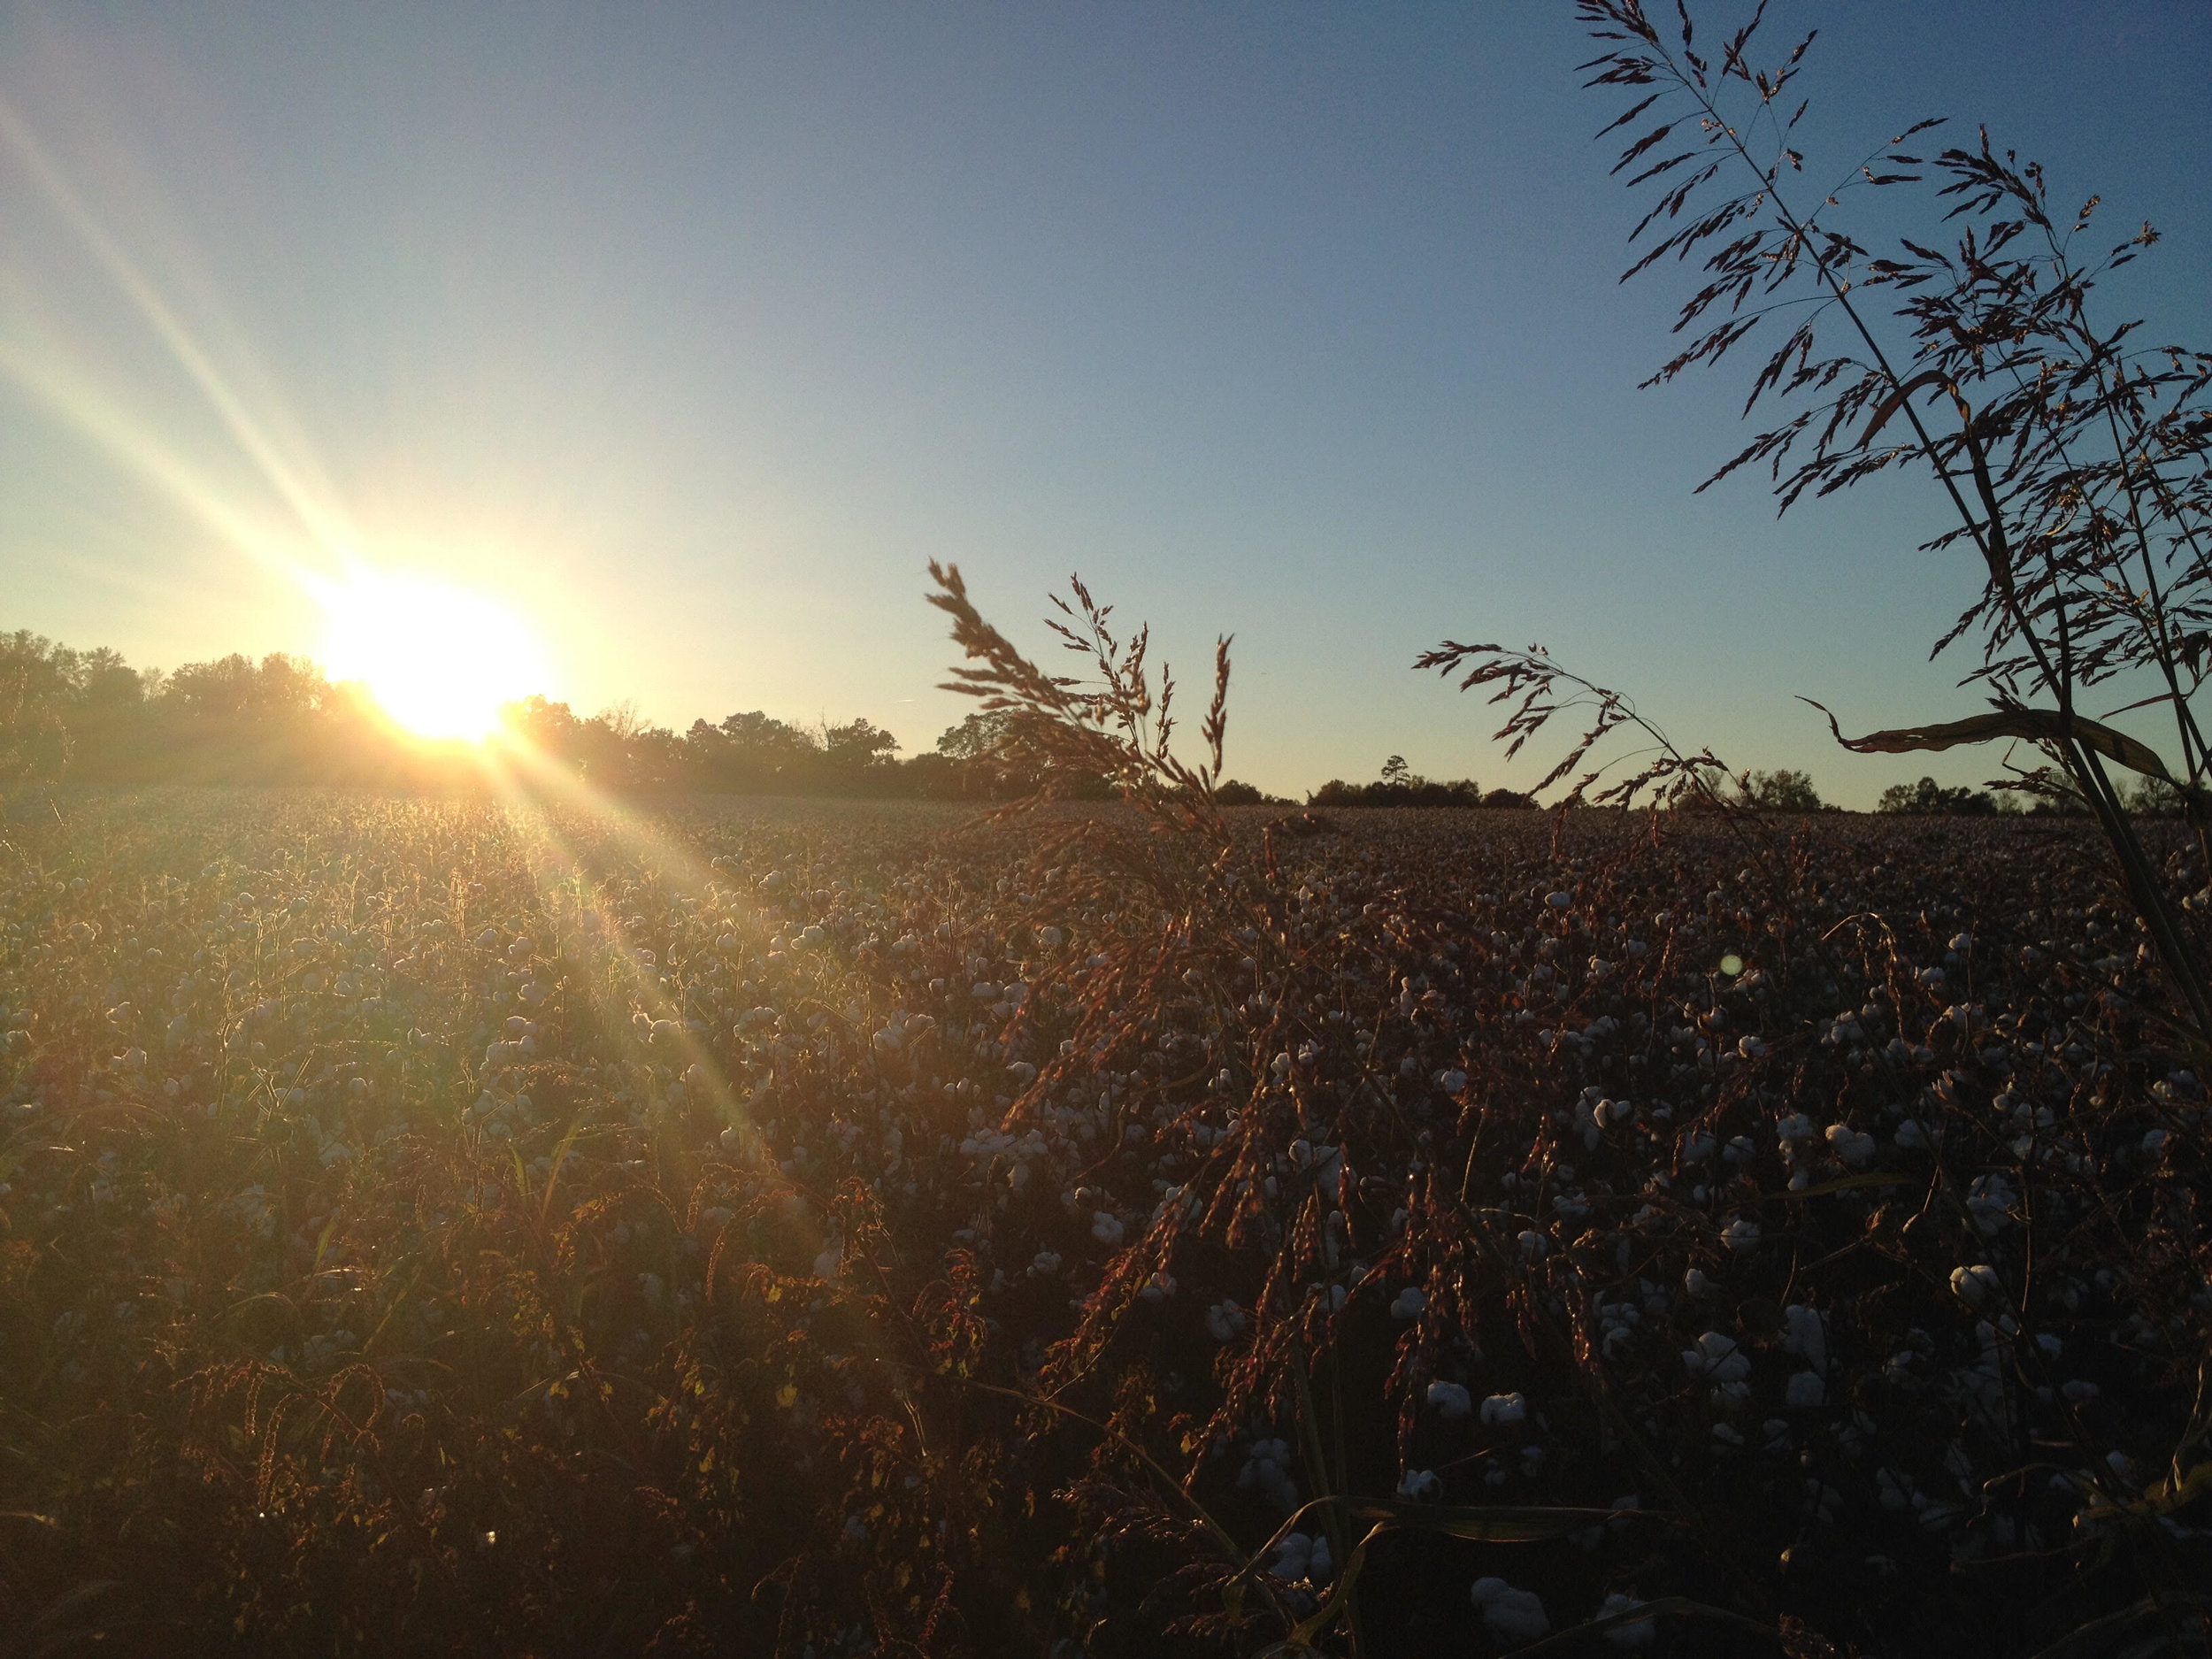 A cotton field in Union County, NC (image: Patrick Bradey)